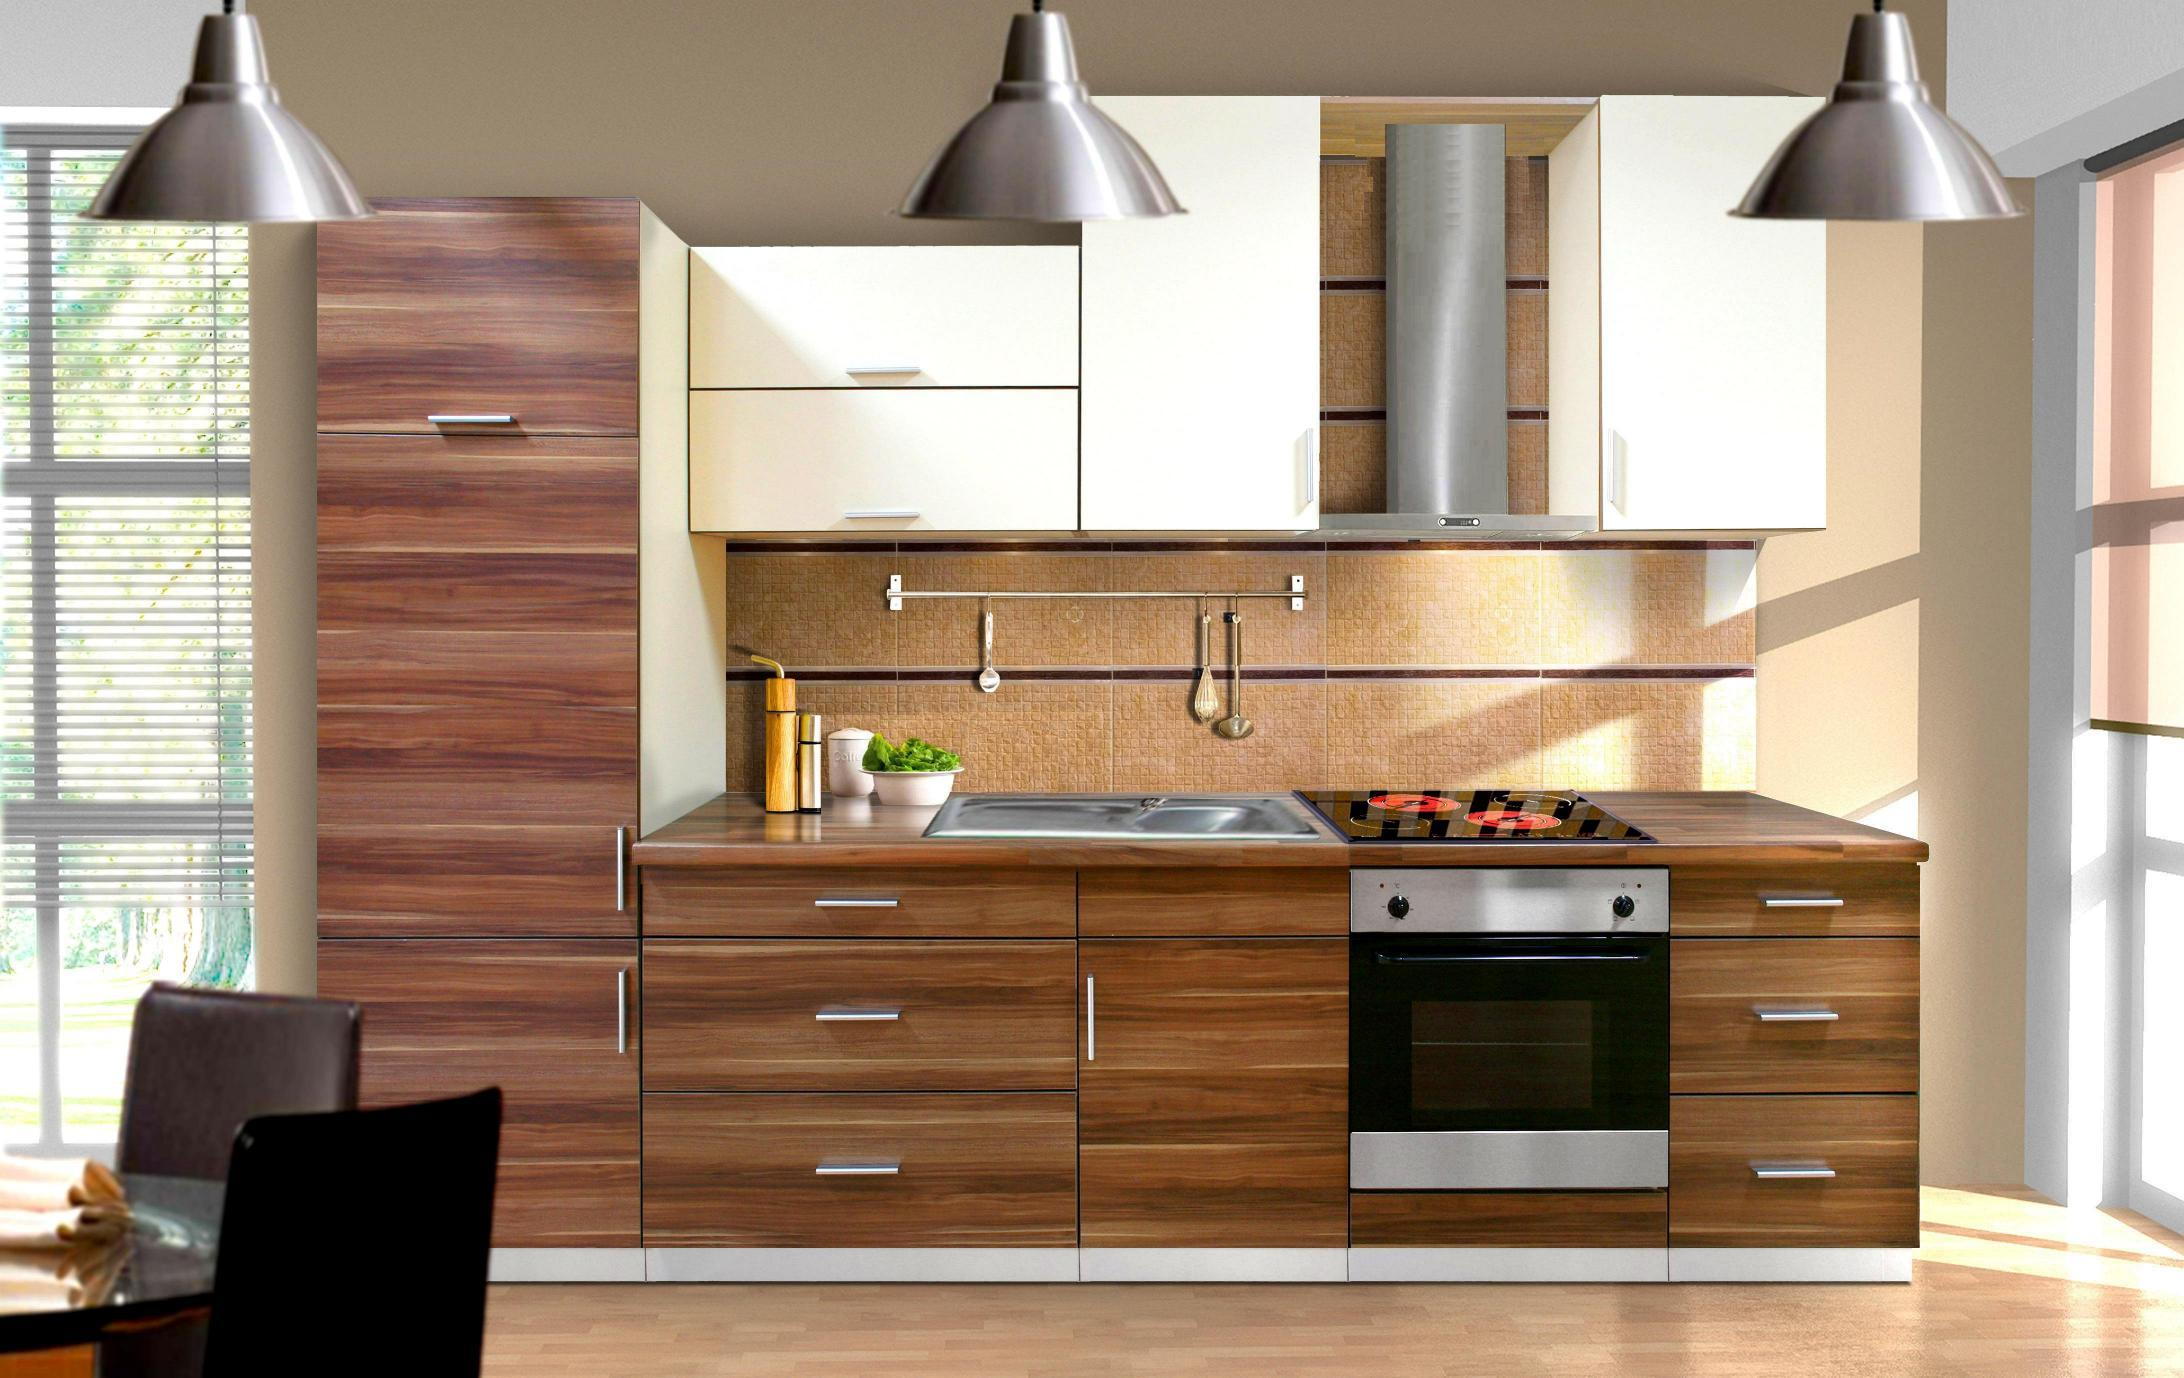 modern kitchen cabinet design ideas furnished electric oven range amazing small kitchen cabinet fittings interior design